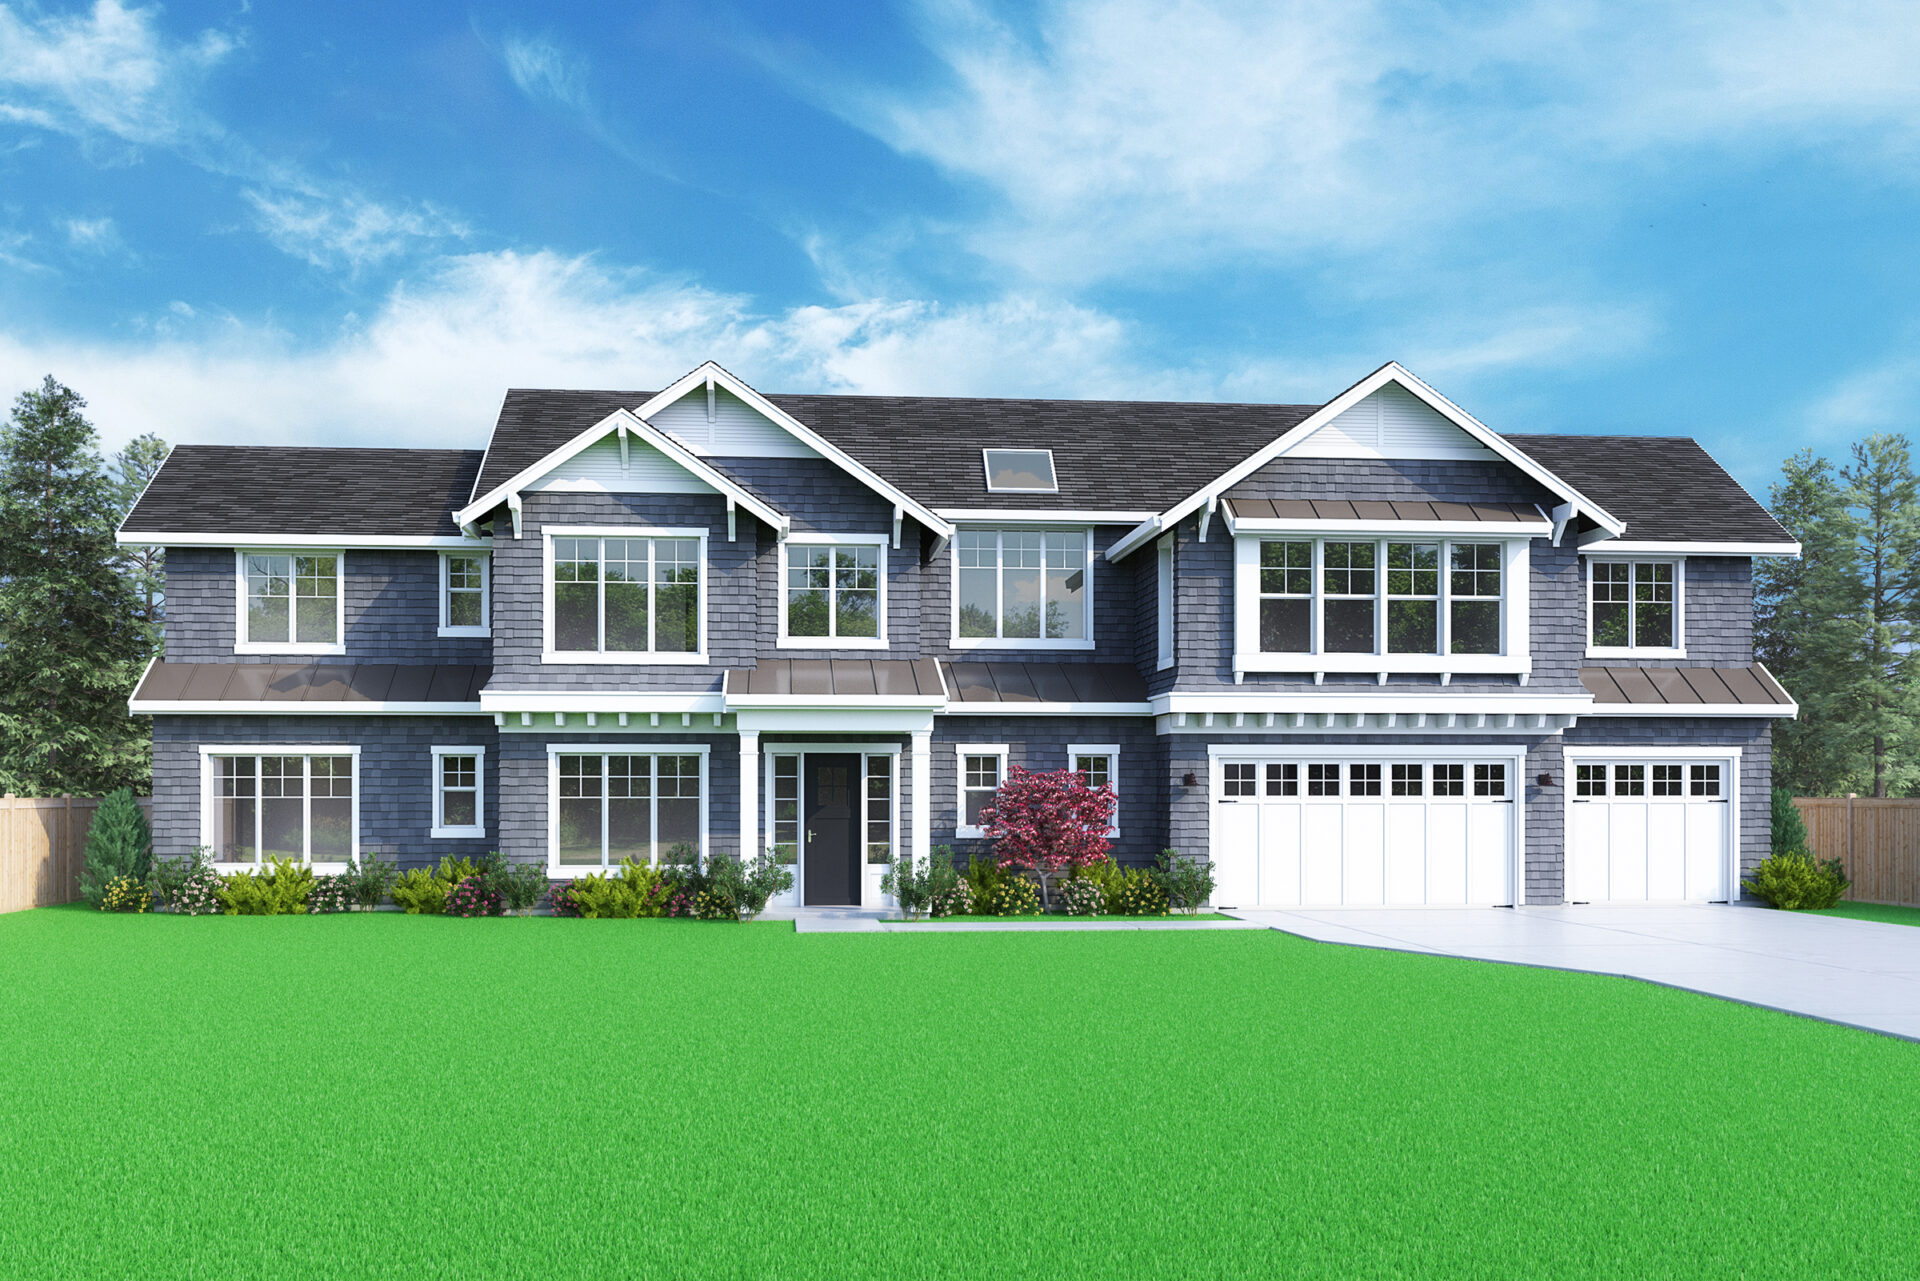 View our new luxury home construction on 15000 SE 44th St, in Bellevue, WA from MN Custom Homes